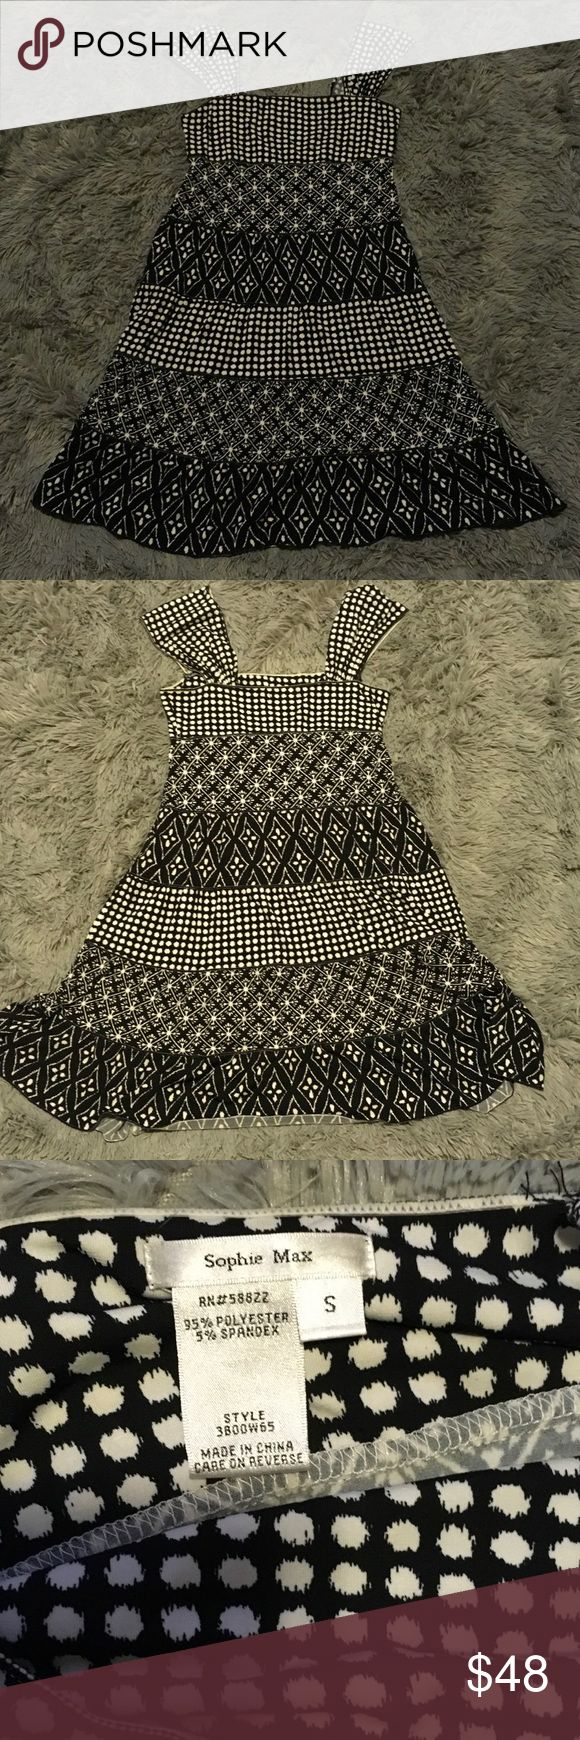 Sophie Max small black and white dress. Sophie Max black and white patterned dress. Super cute!!! In excellent condition only worn a few times. Size small. Comes from a smoke and pet free home. Sophie Max Dresses